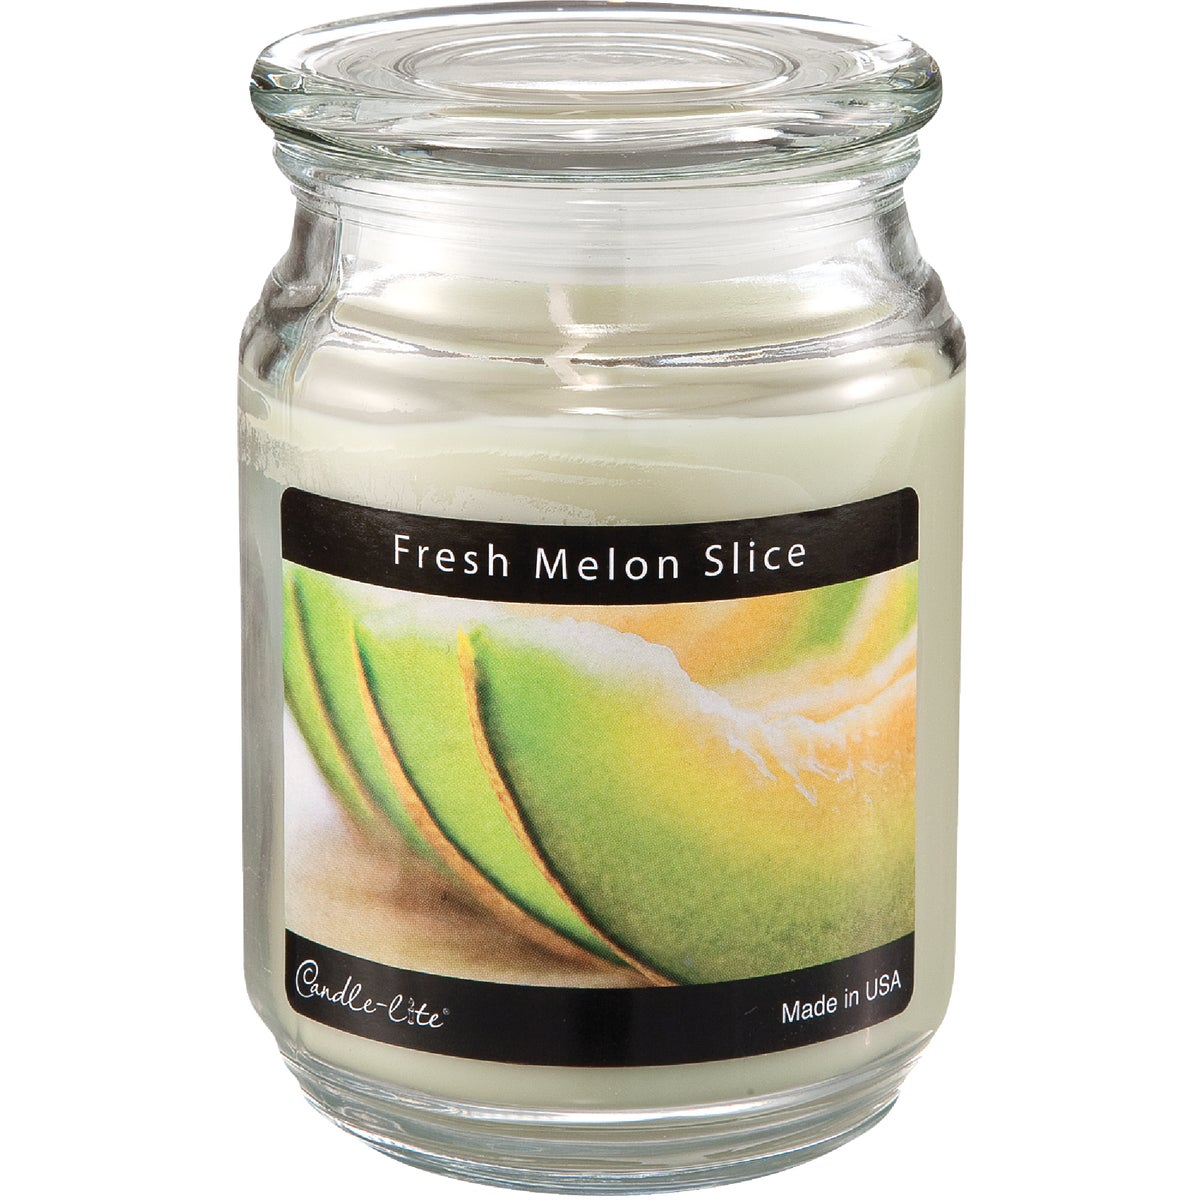 MELON SLICE JAR CANDLE - 3297312 by Candle Lite Co